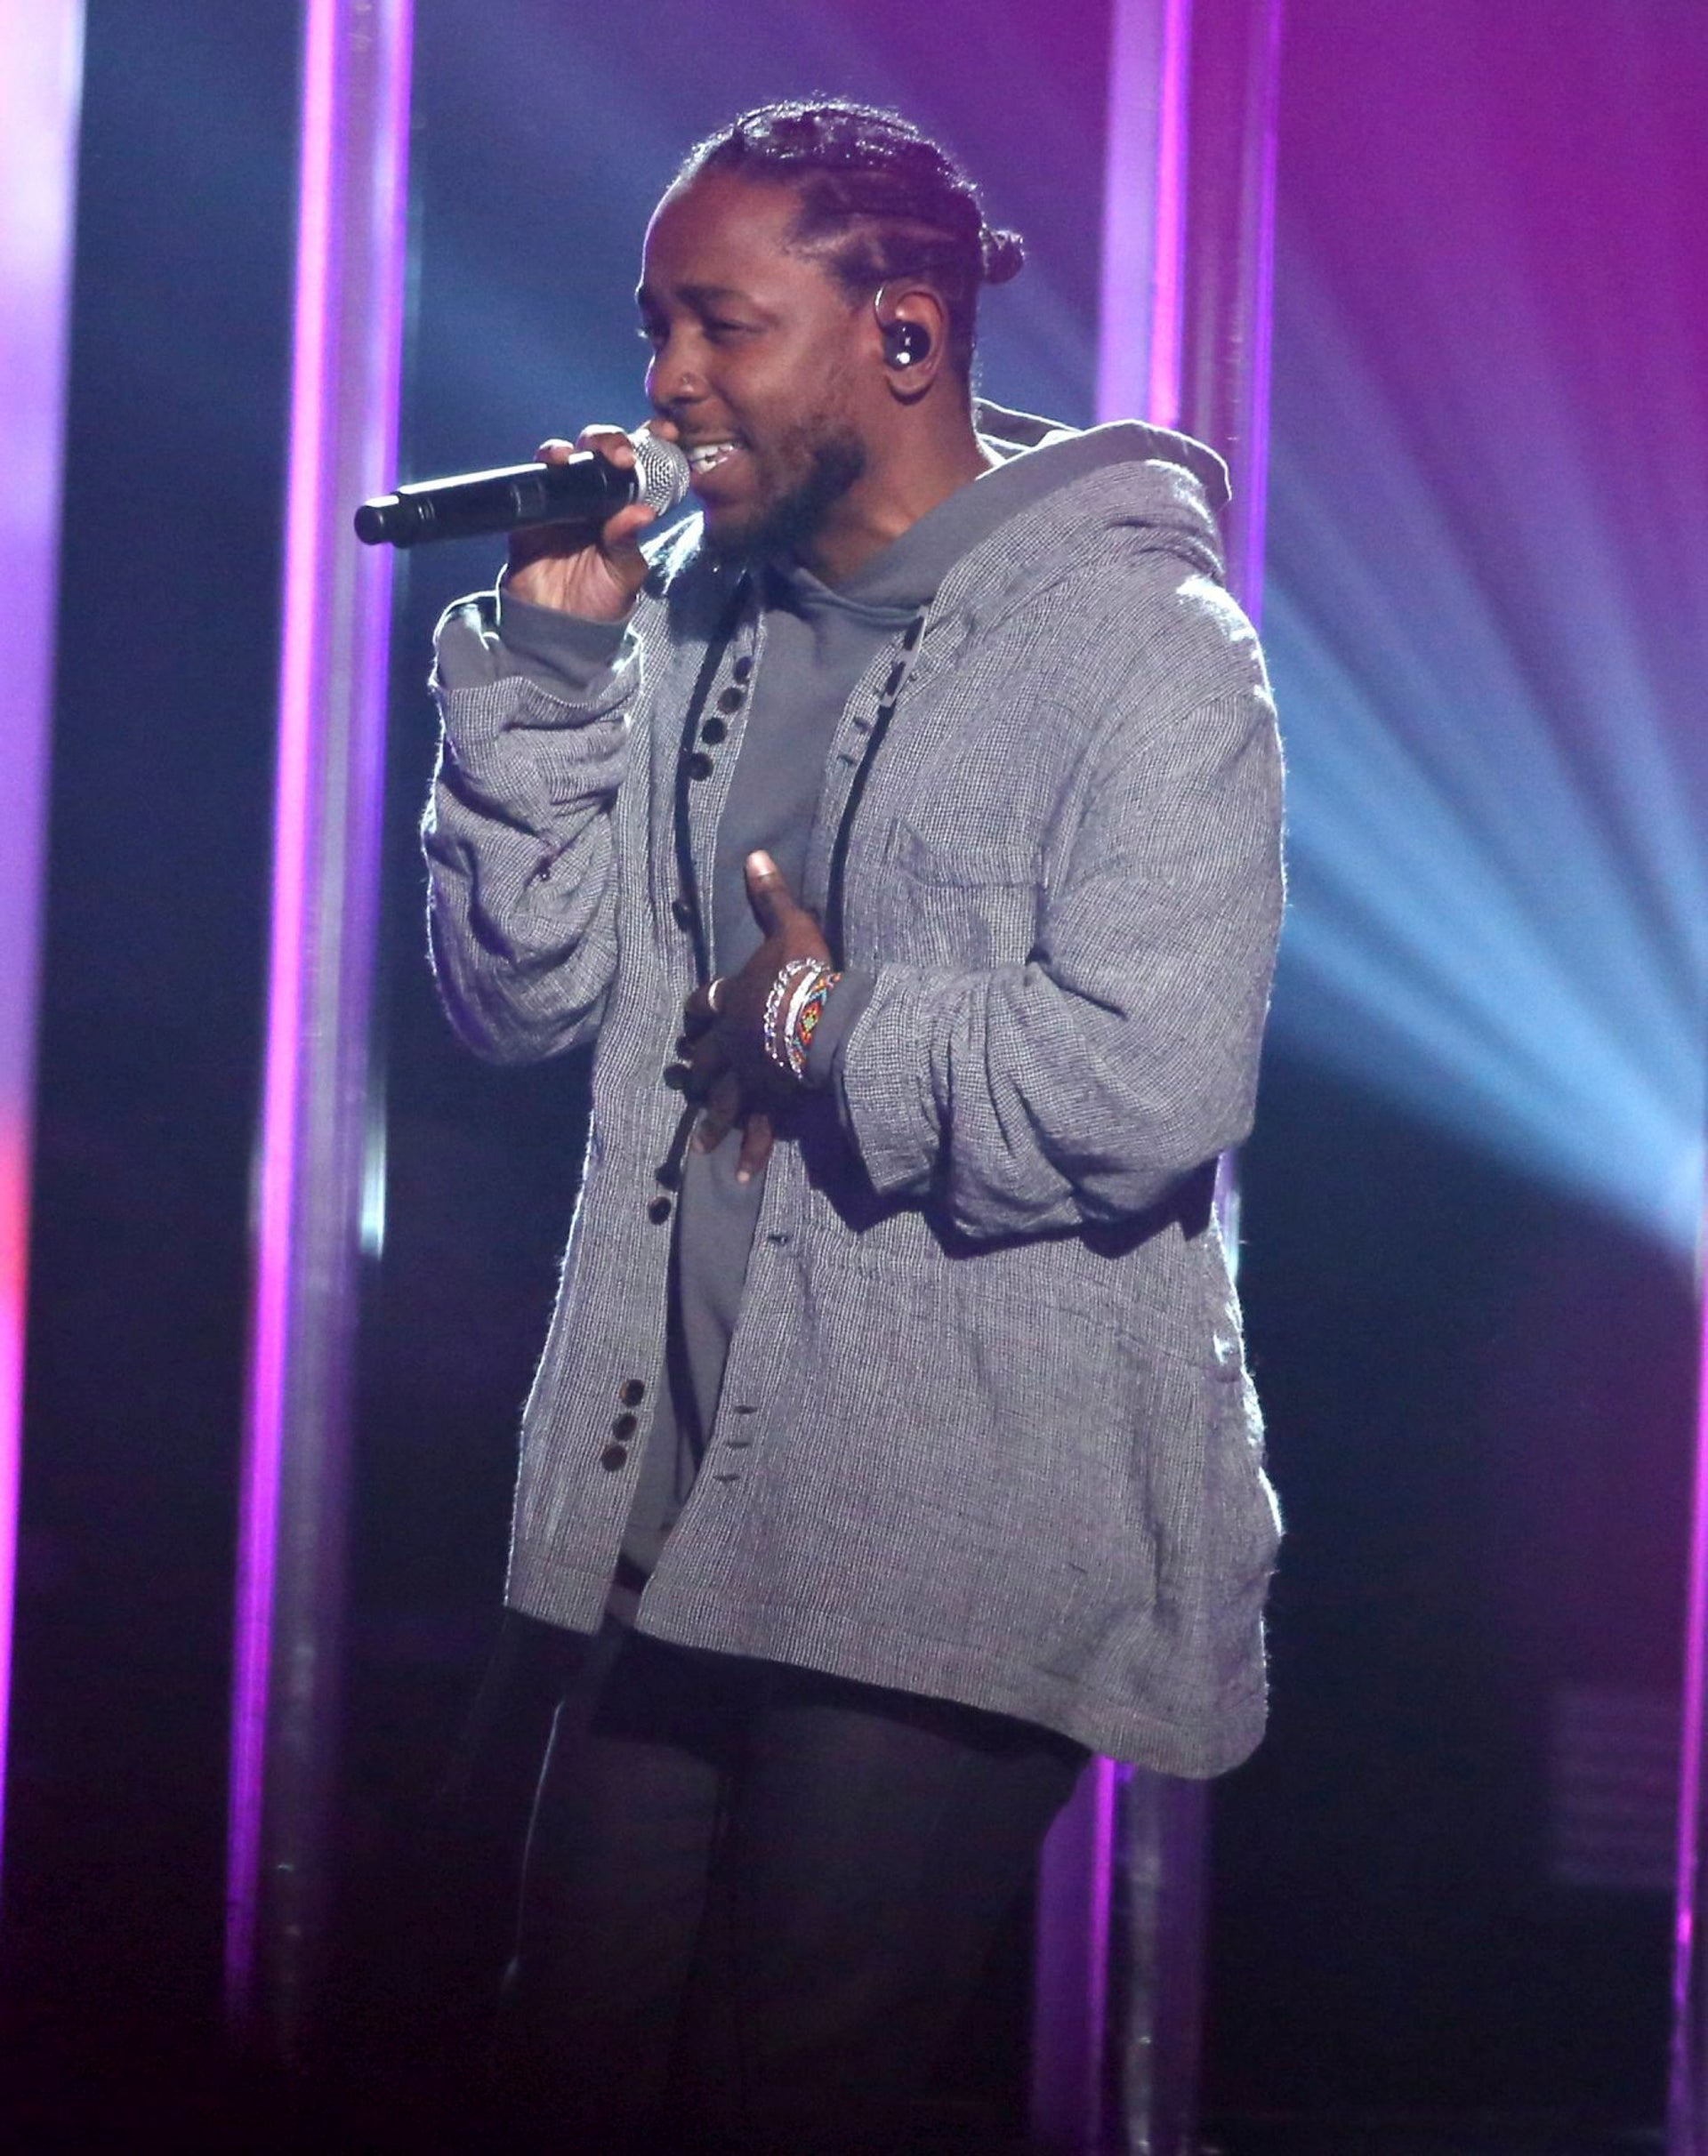 """Kendrick Lamar performs """"Don't Wanna Know"""" at the American Music Awards at the Microsoft Theater on Sunday, Nov. 20, 2016, in Los Angeles."""